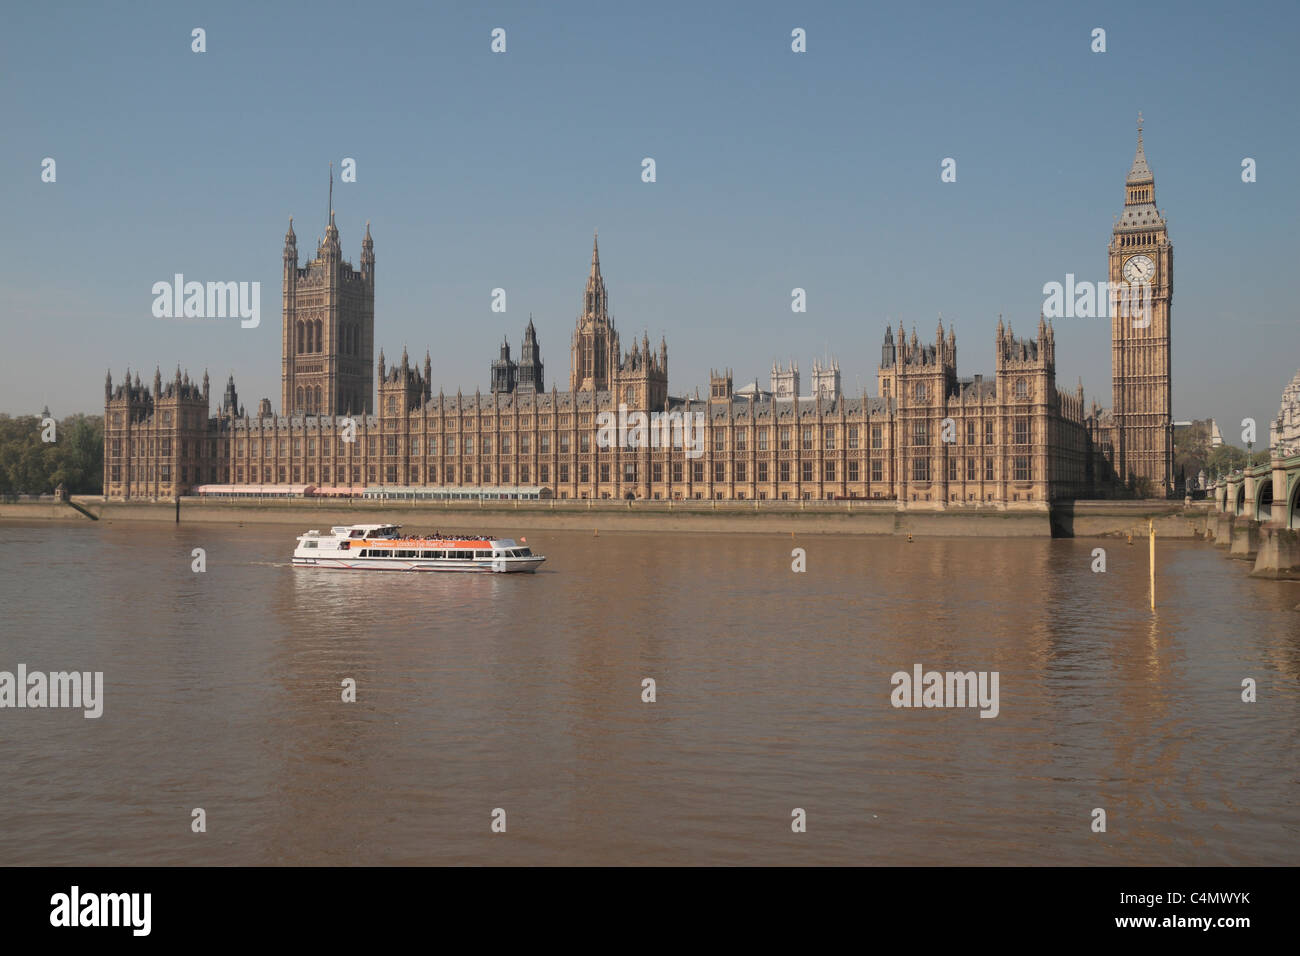 The Palace of Westminster (Houses of Parliament),  Elizabeth Tower (Big Ben) and River Thames cruise boat in London - Stock Image